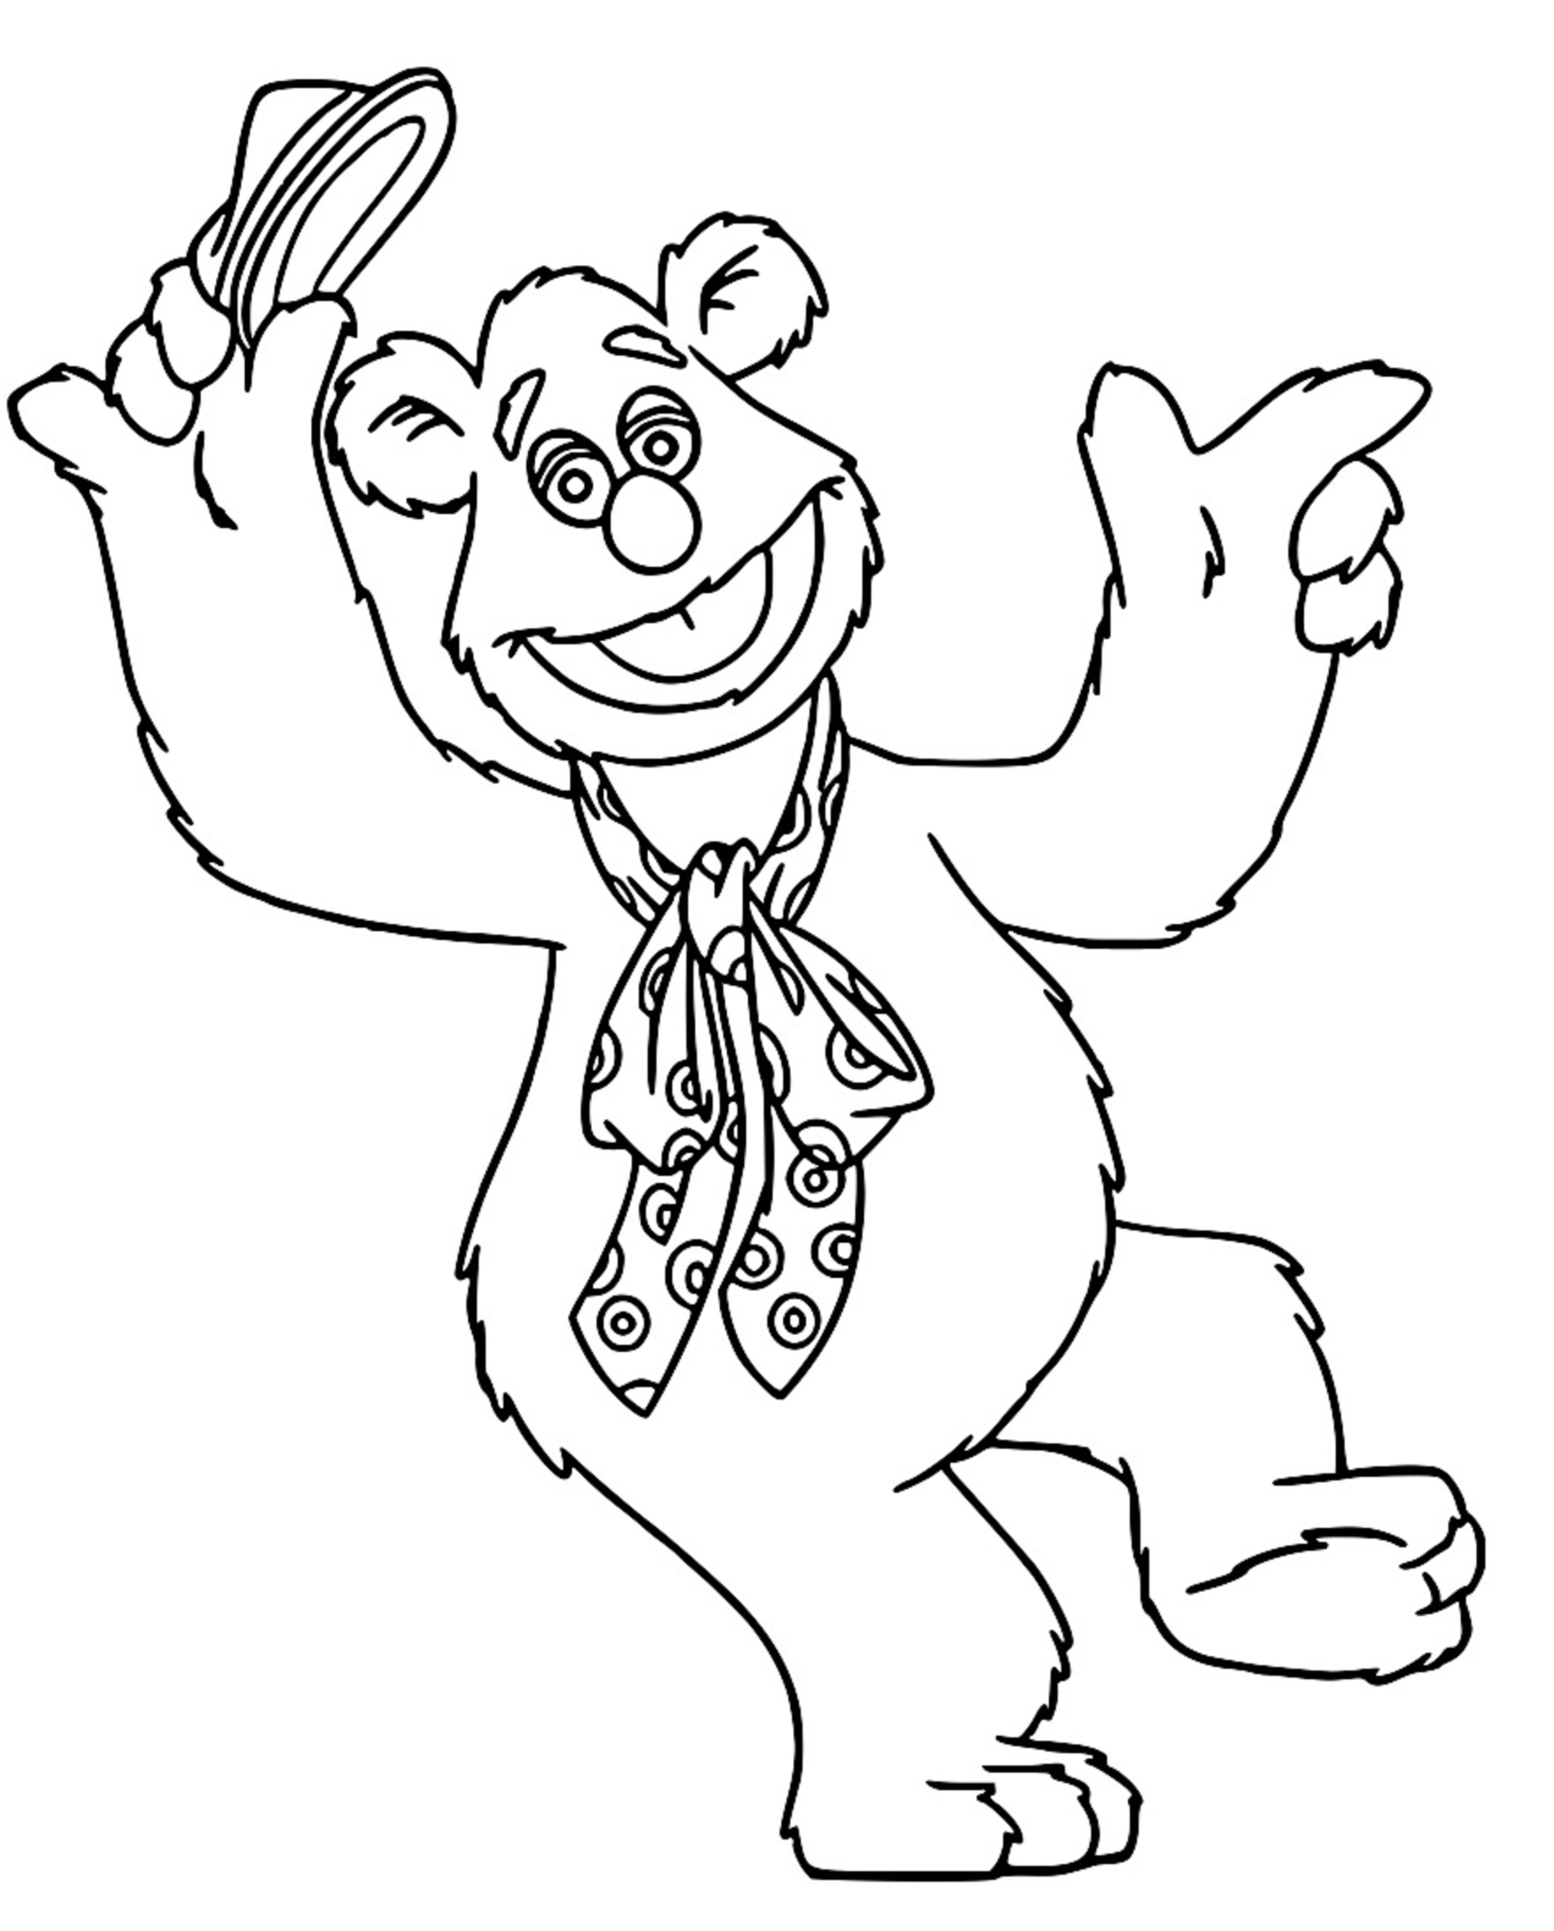 The Muppets fozzie bear Cartoon Coloring Page